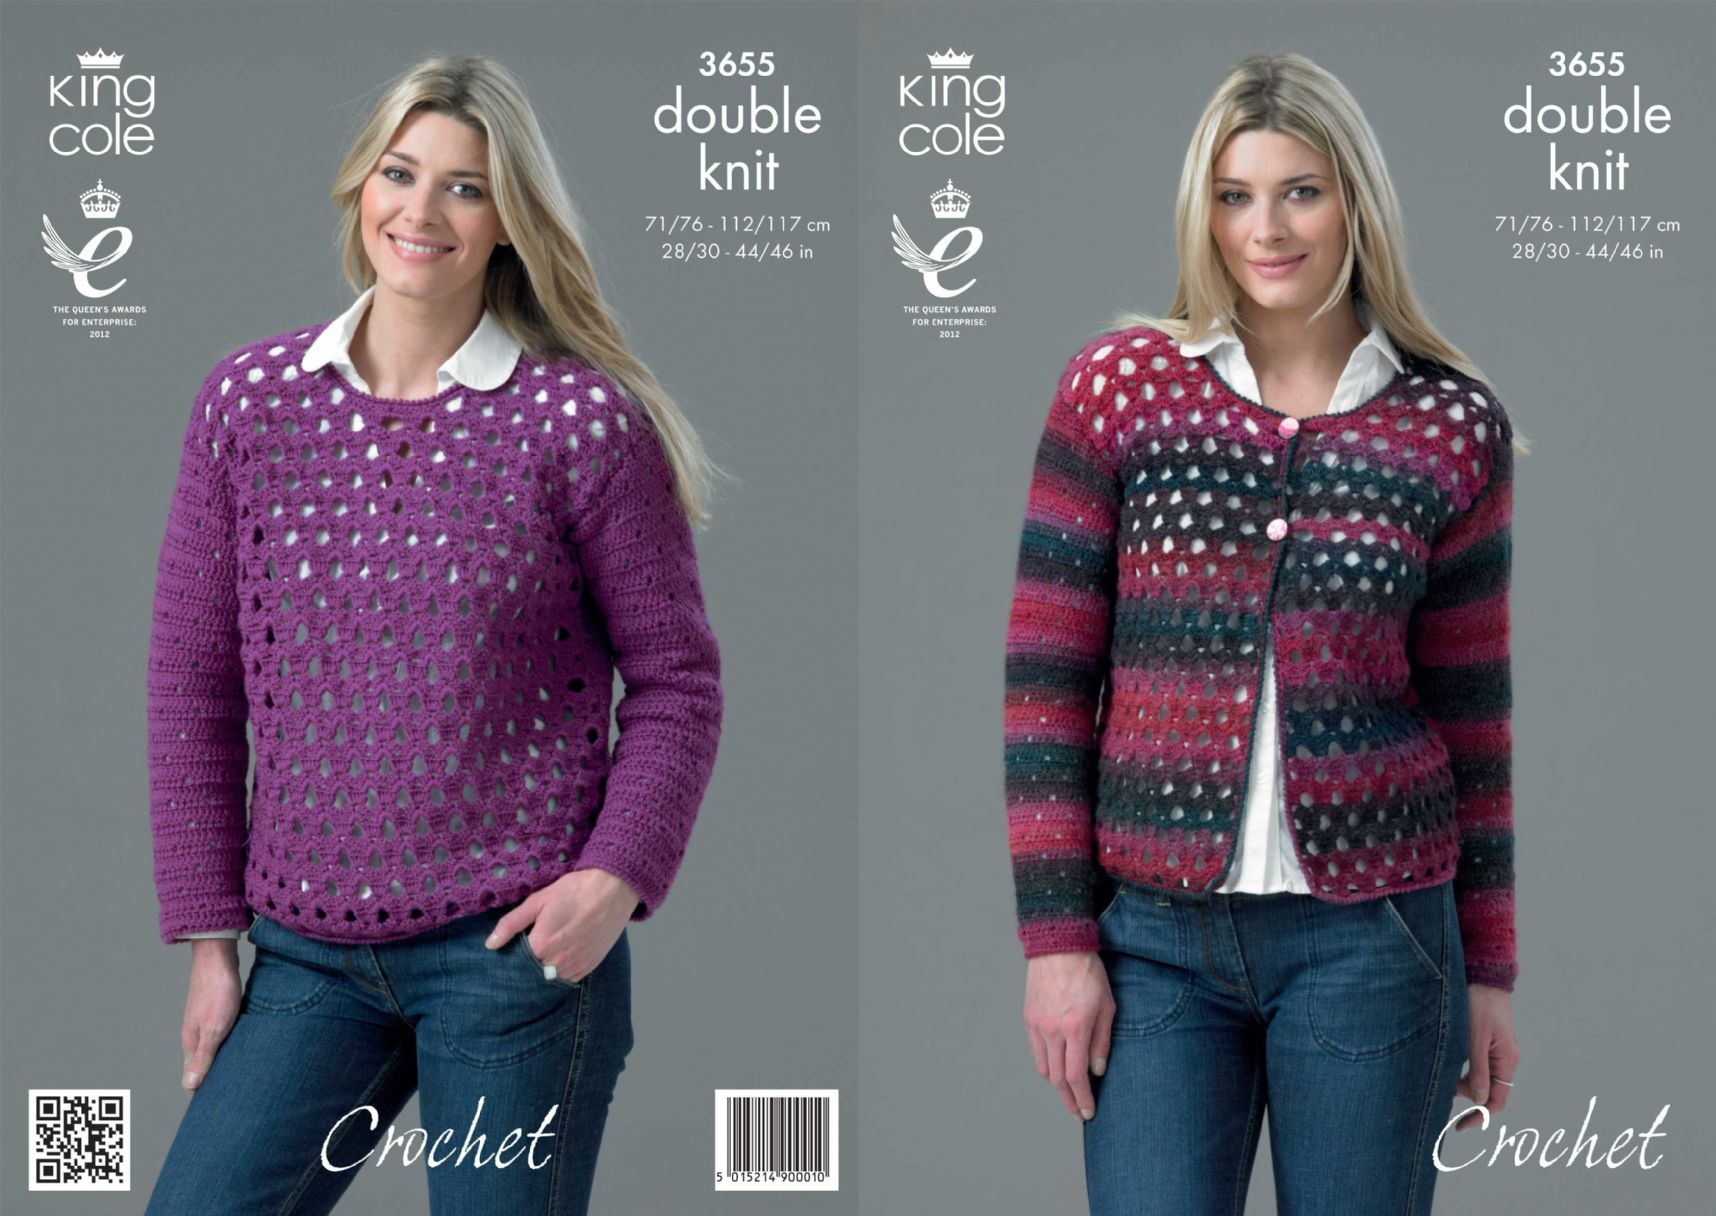 3655 - KING COLE RIOT DK CARDIGAN & SWEATER CROCHET PATTERN - TO FIT ...